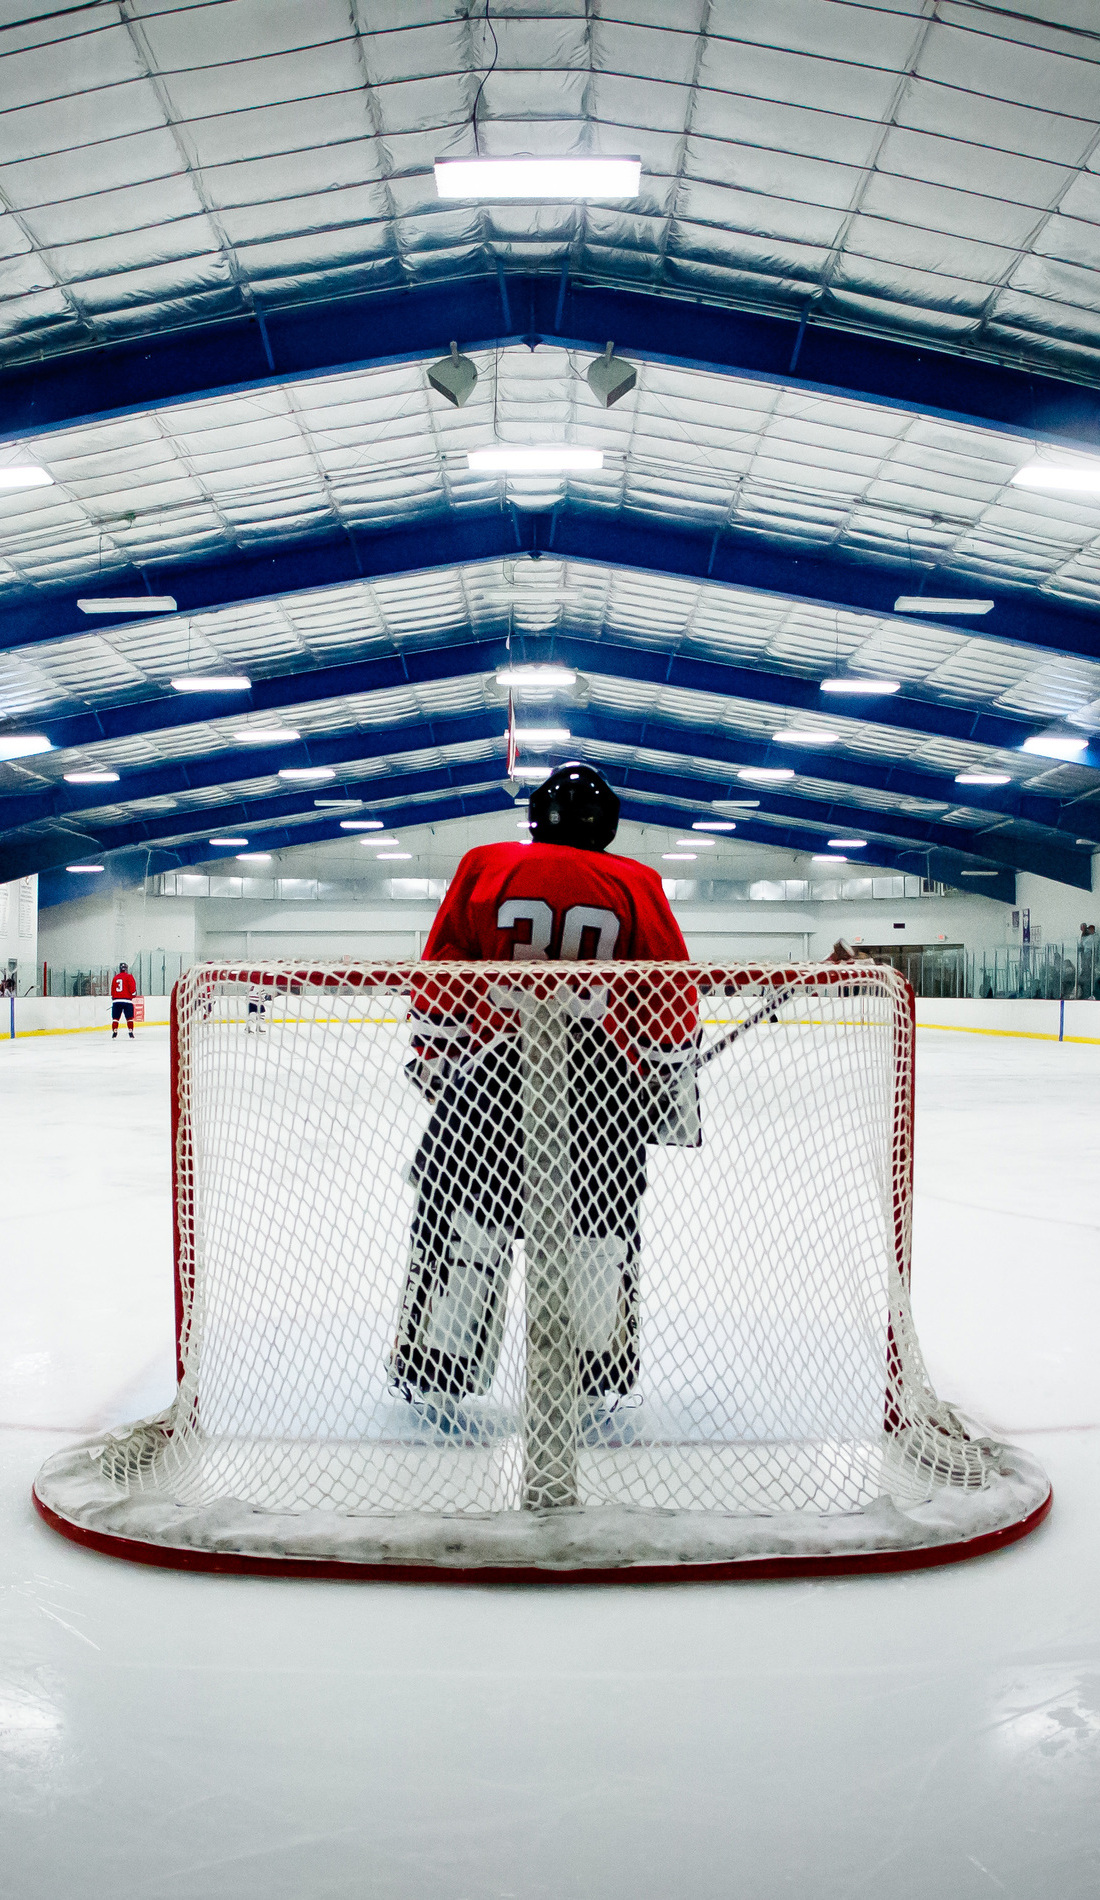 A Wisconsin Badgers Hockey live event